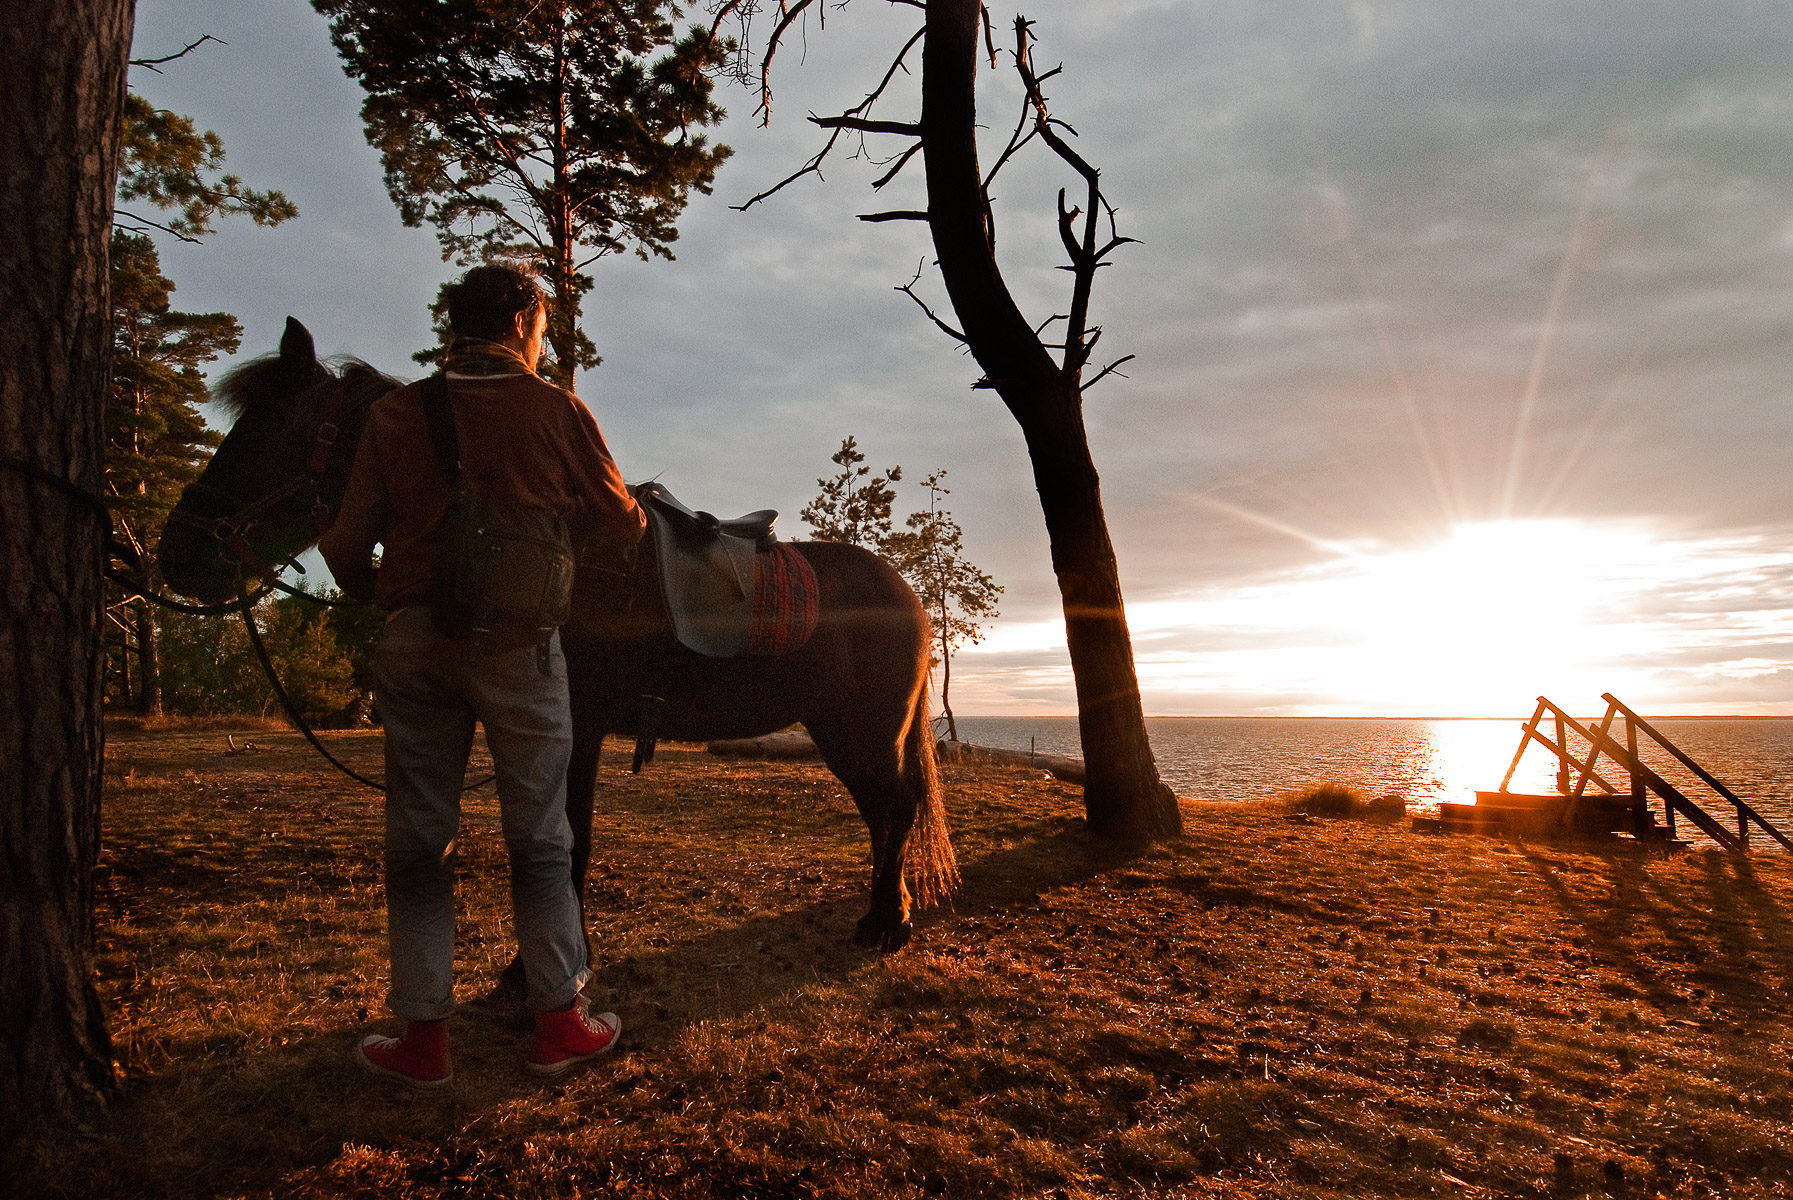 The boy and his horse